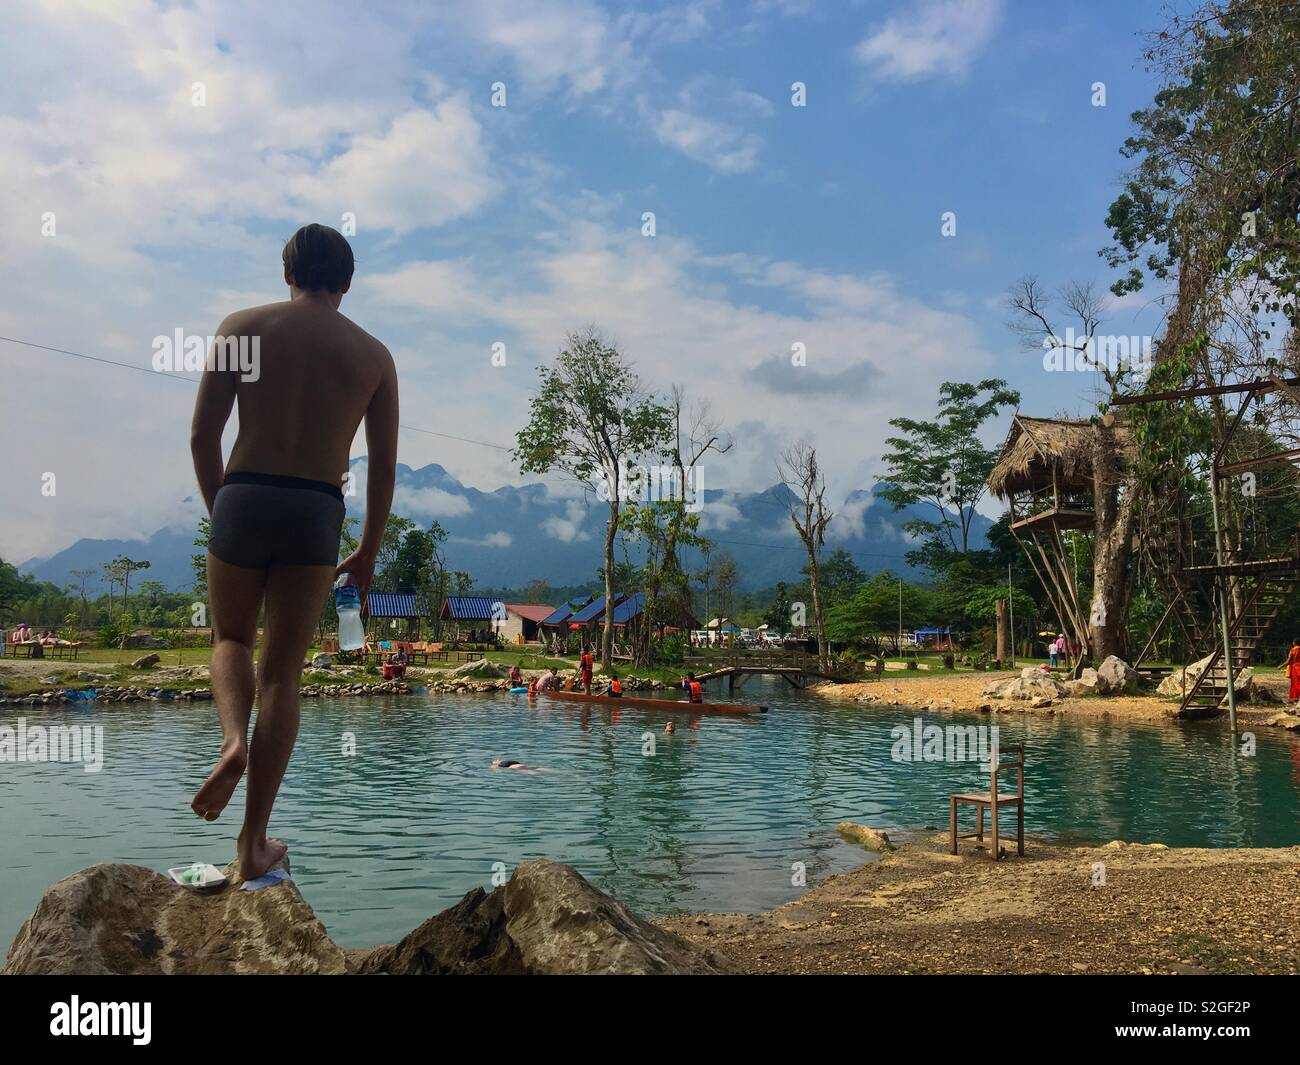 Tourist at watering hole in Laos - Stock Image